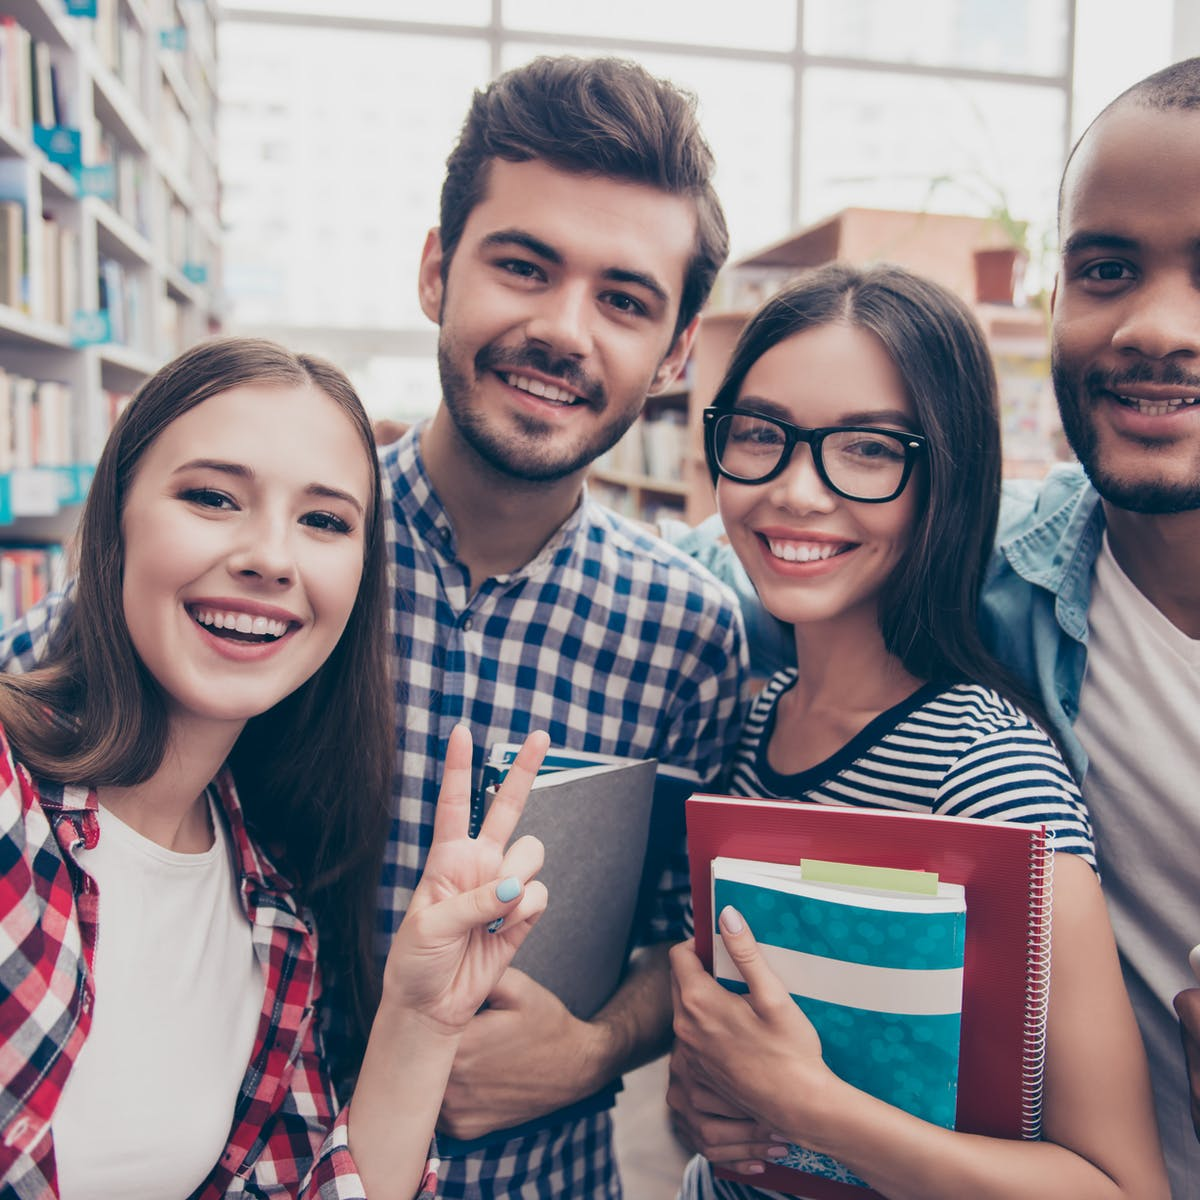 Australia S Graduate Work Visa Scheme Attracts International Students To Our Universities Is It Enough